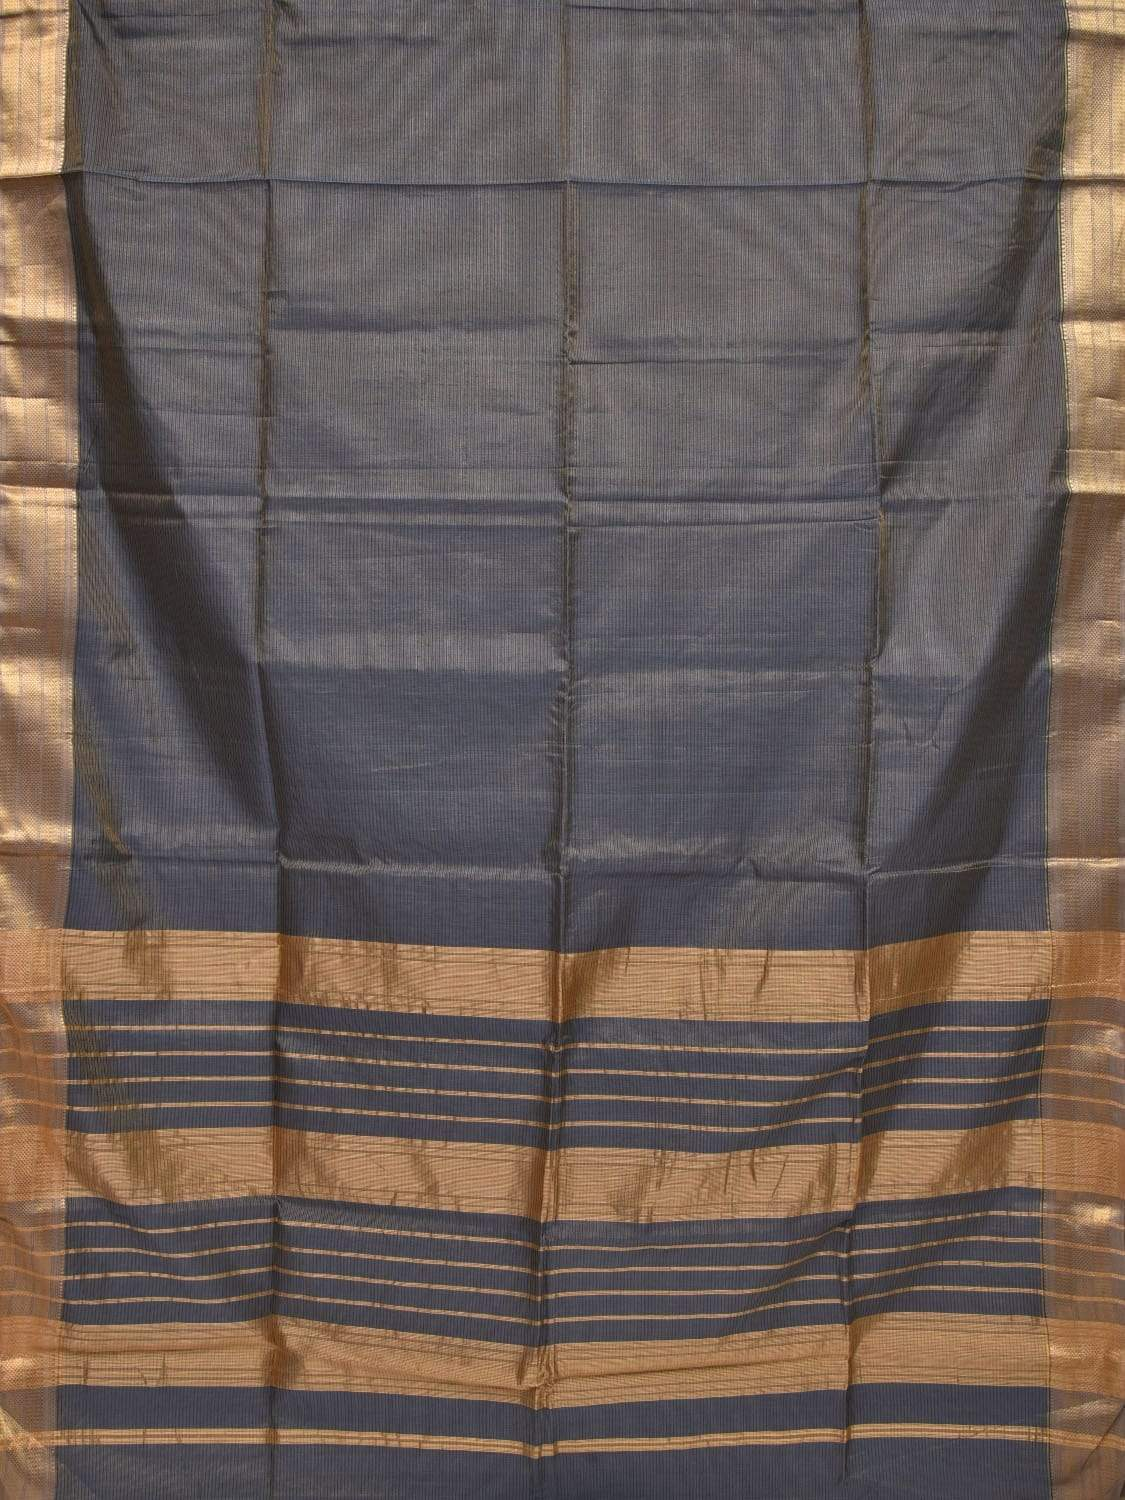 Grey Maheshwari Cotton Silk Handloom Saree with Strips Pallu Design m0117